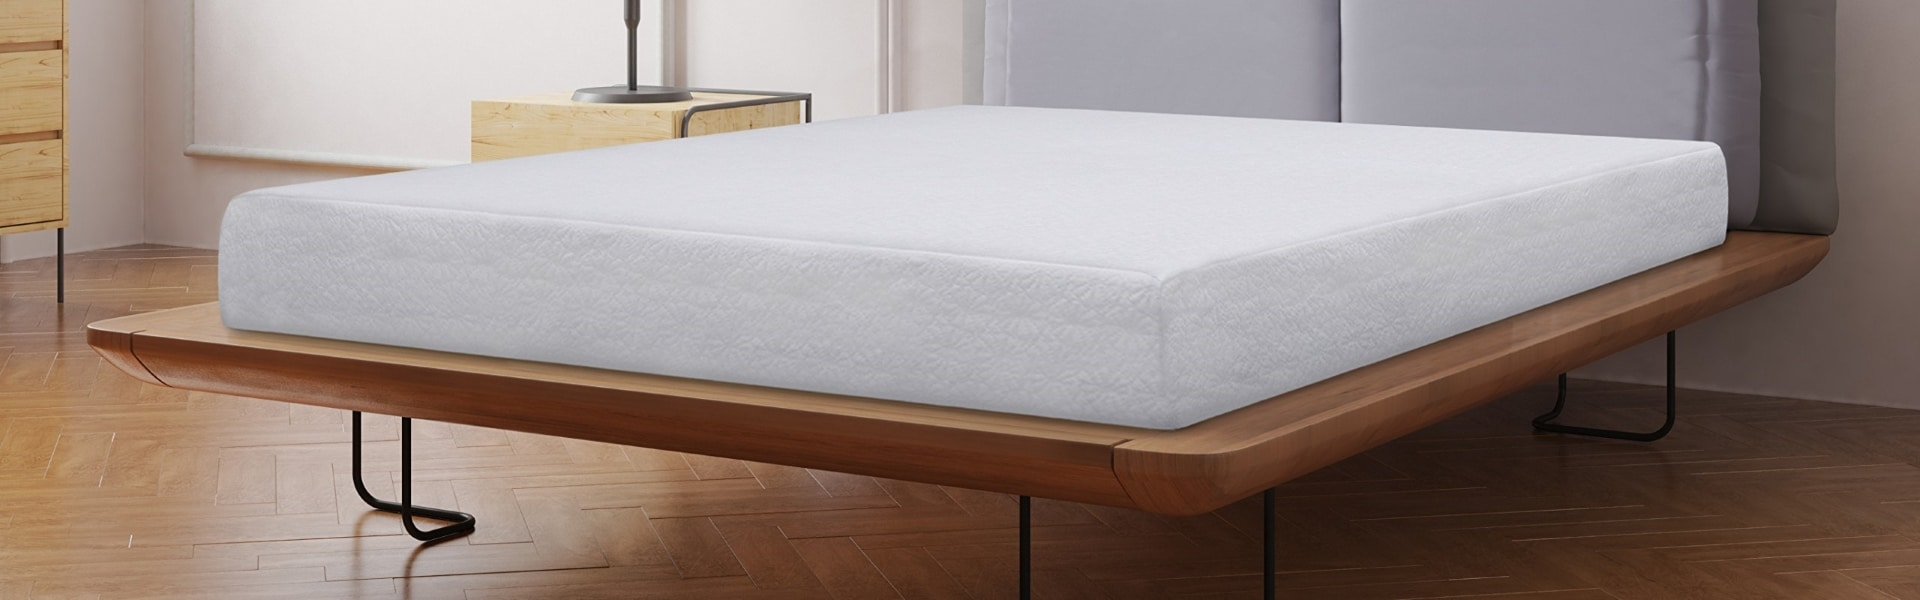 Best 8-Inch Mattresses Reviewed in Detail